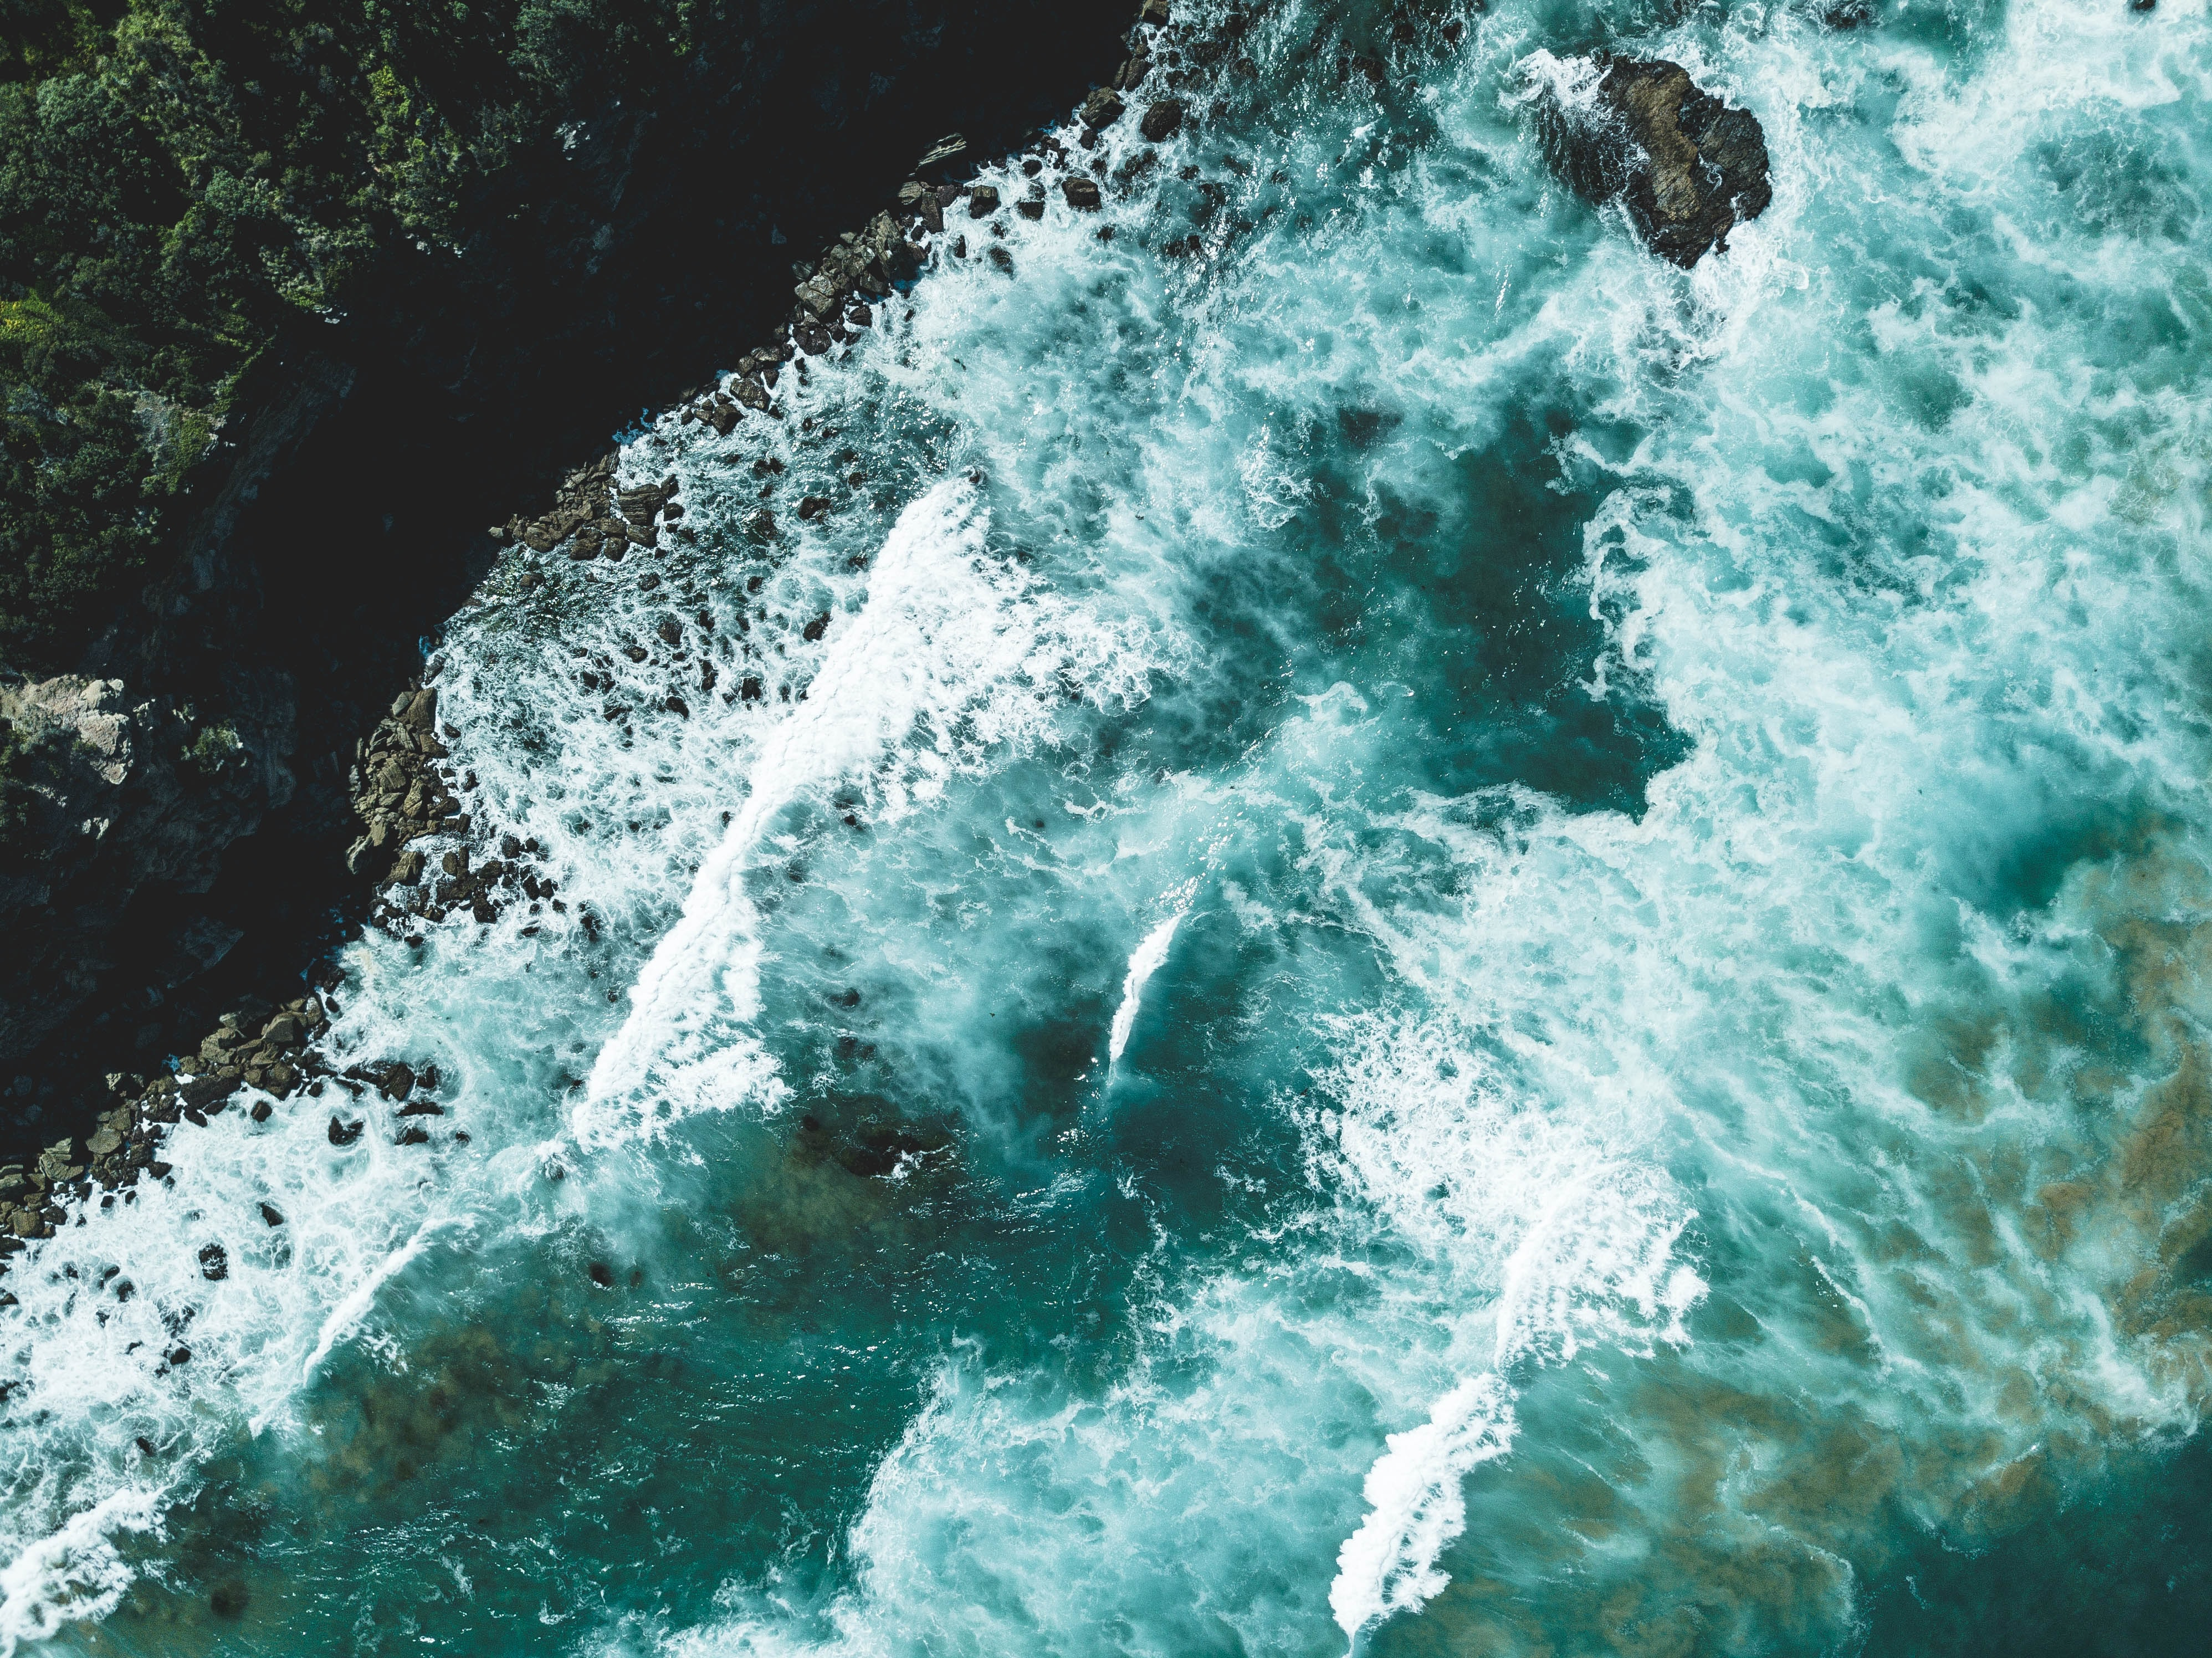 aerial view photography of ocean waves during daytime